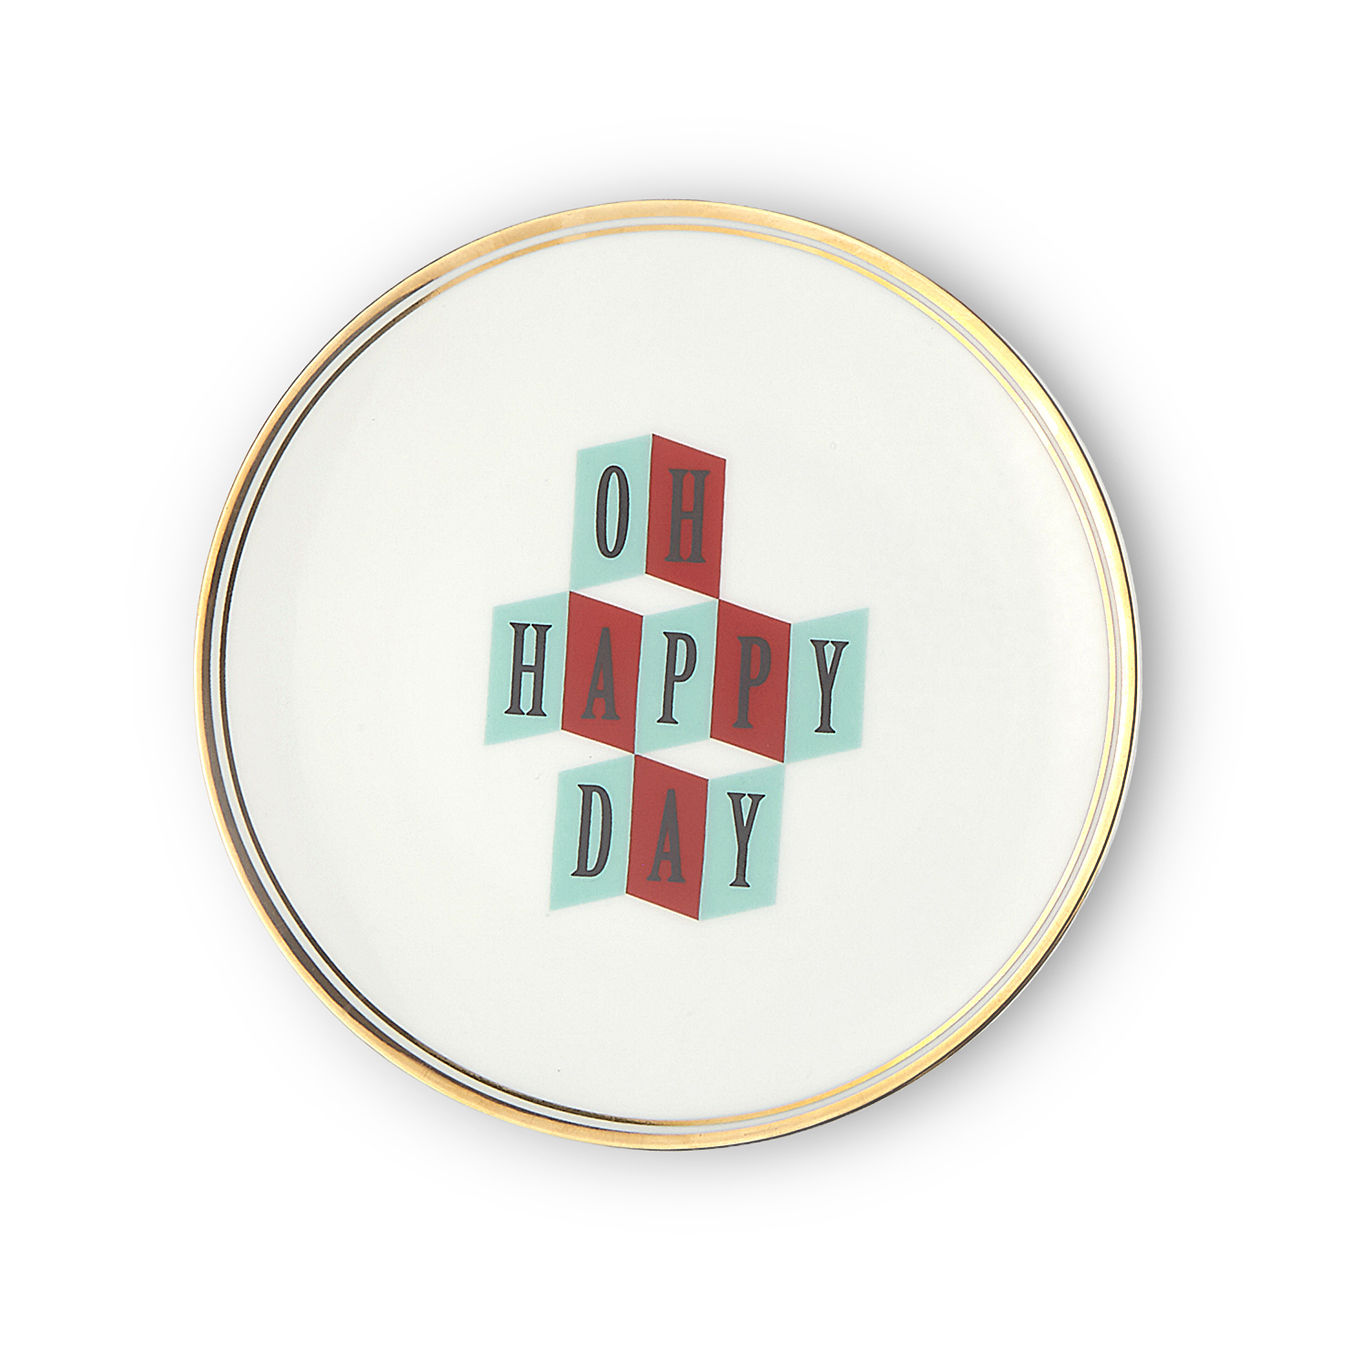 Tableware - Plates - Oh happy day Dessert plate - / Ø 17 cm by Bitossi Home - Oh Happy Day - China